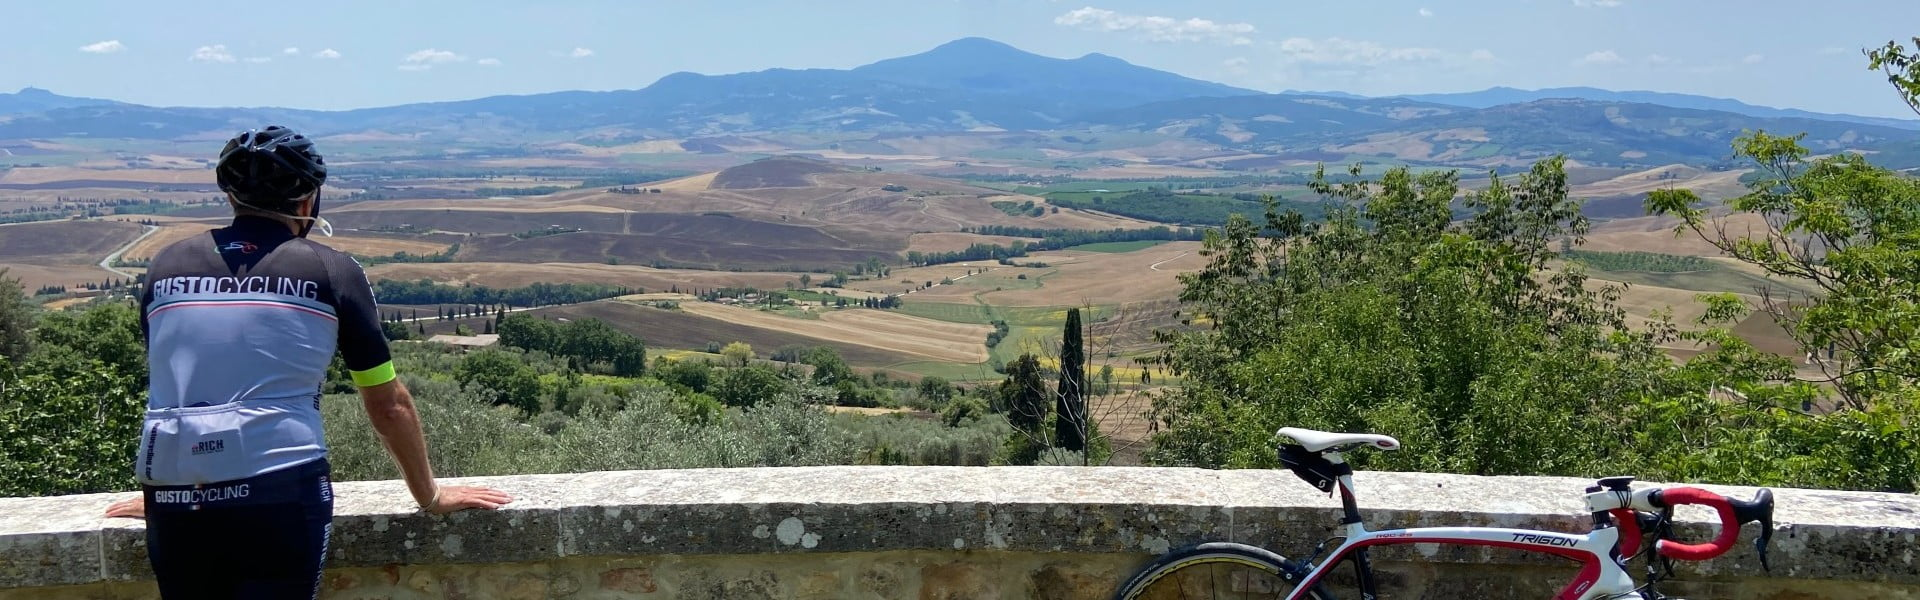 Tuscany Cycle Tour - view from Pienza